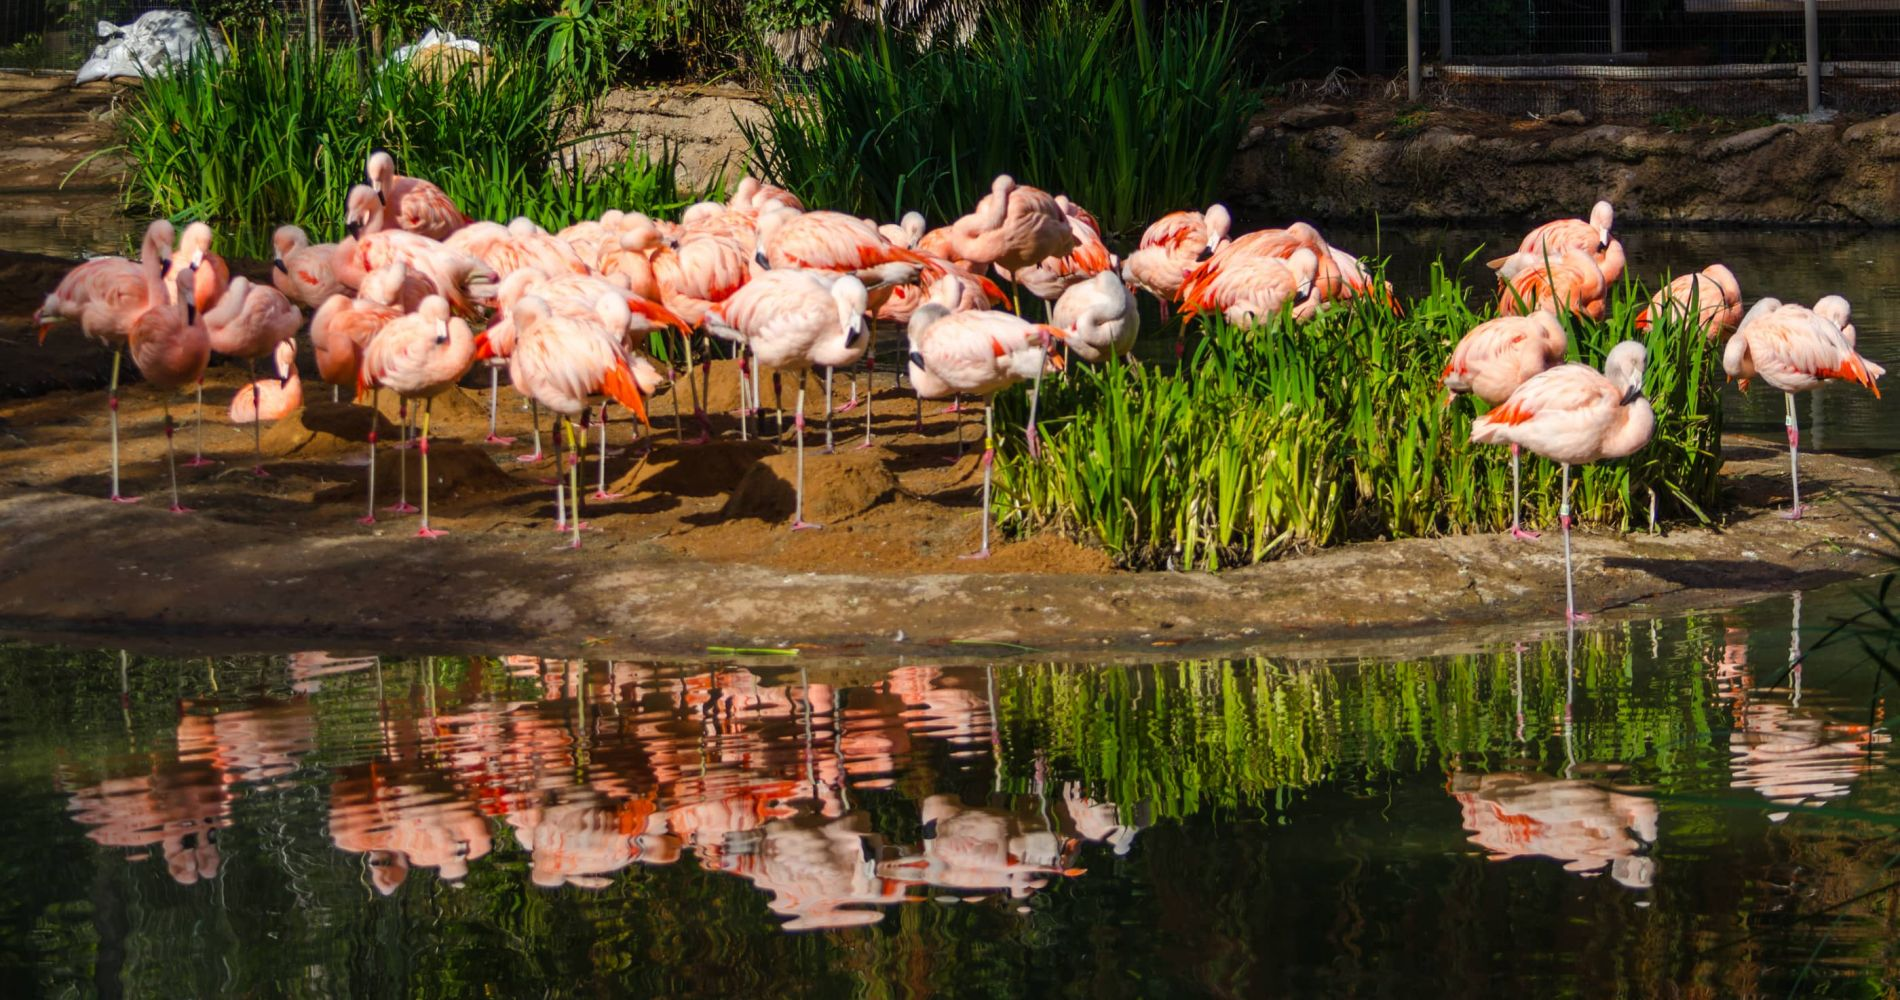 San Diego Zoo Safari Park and other California attractions